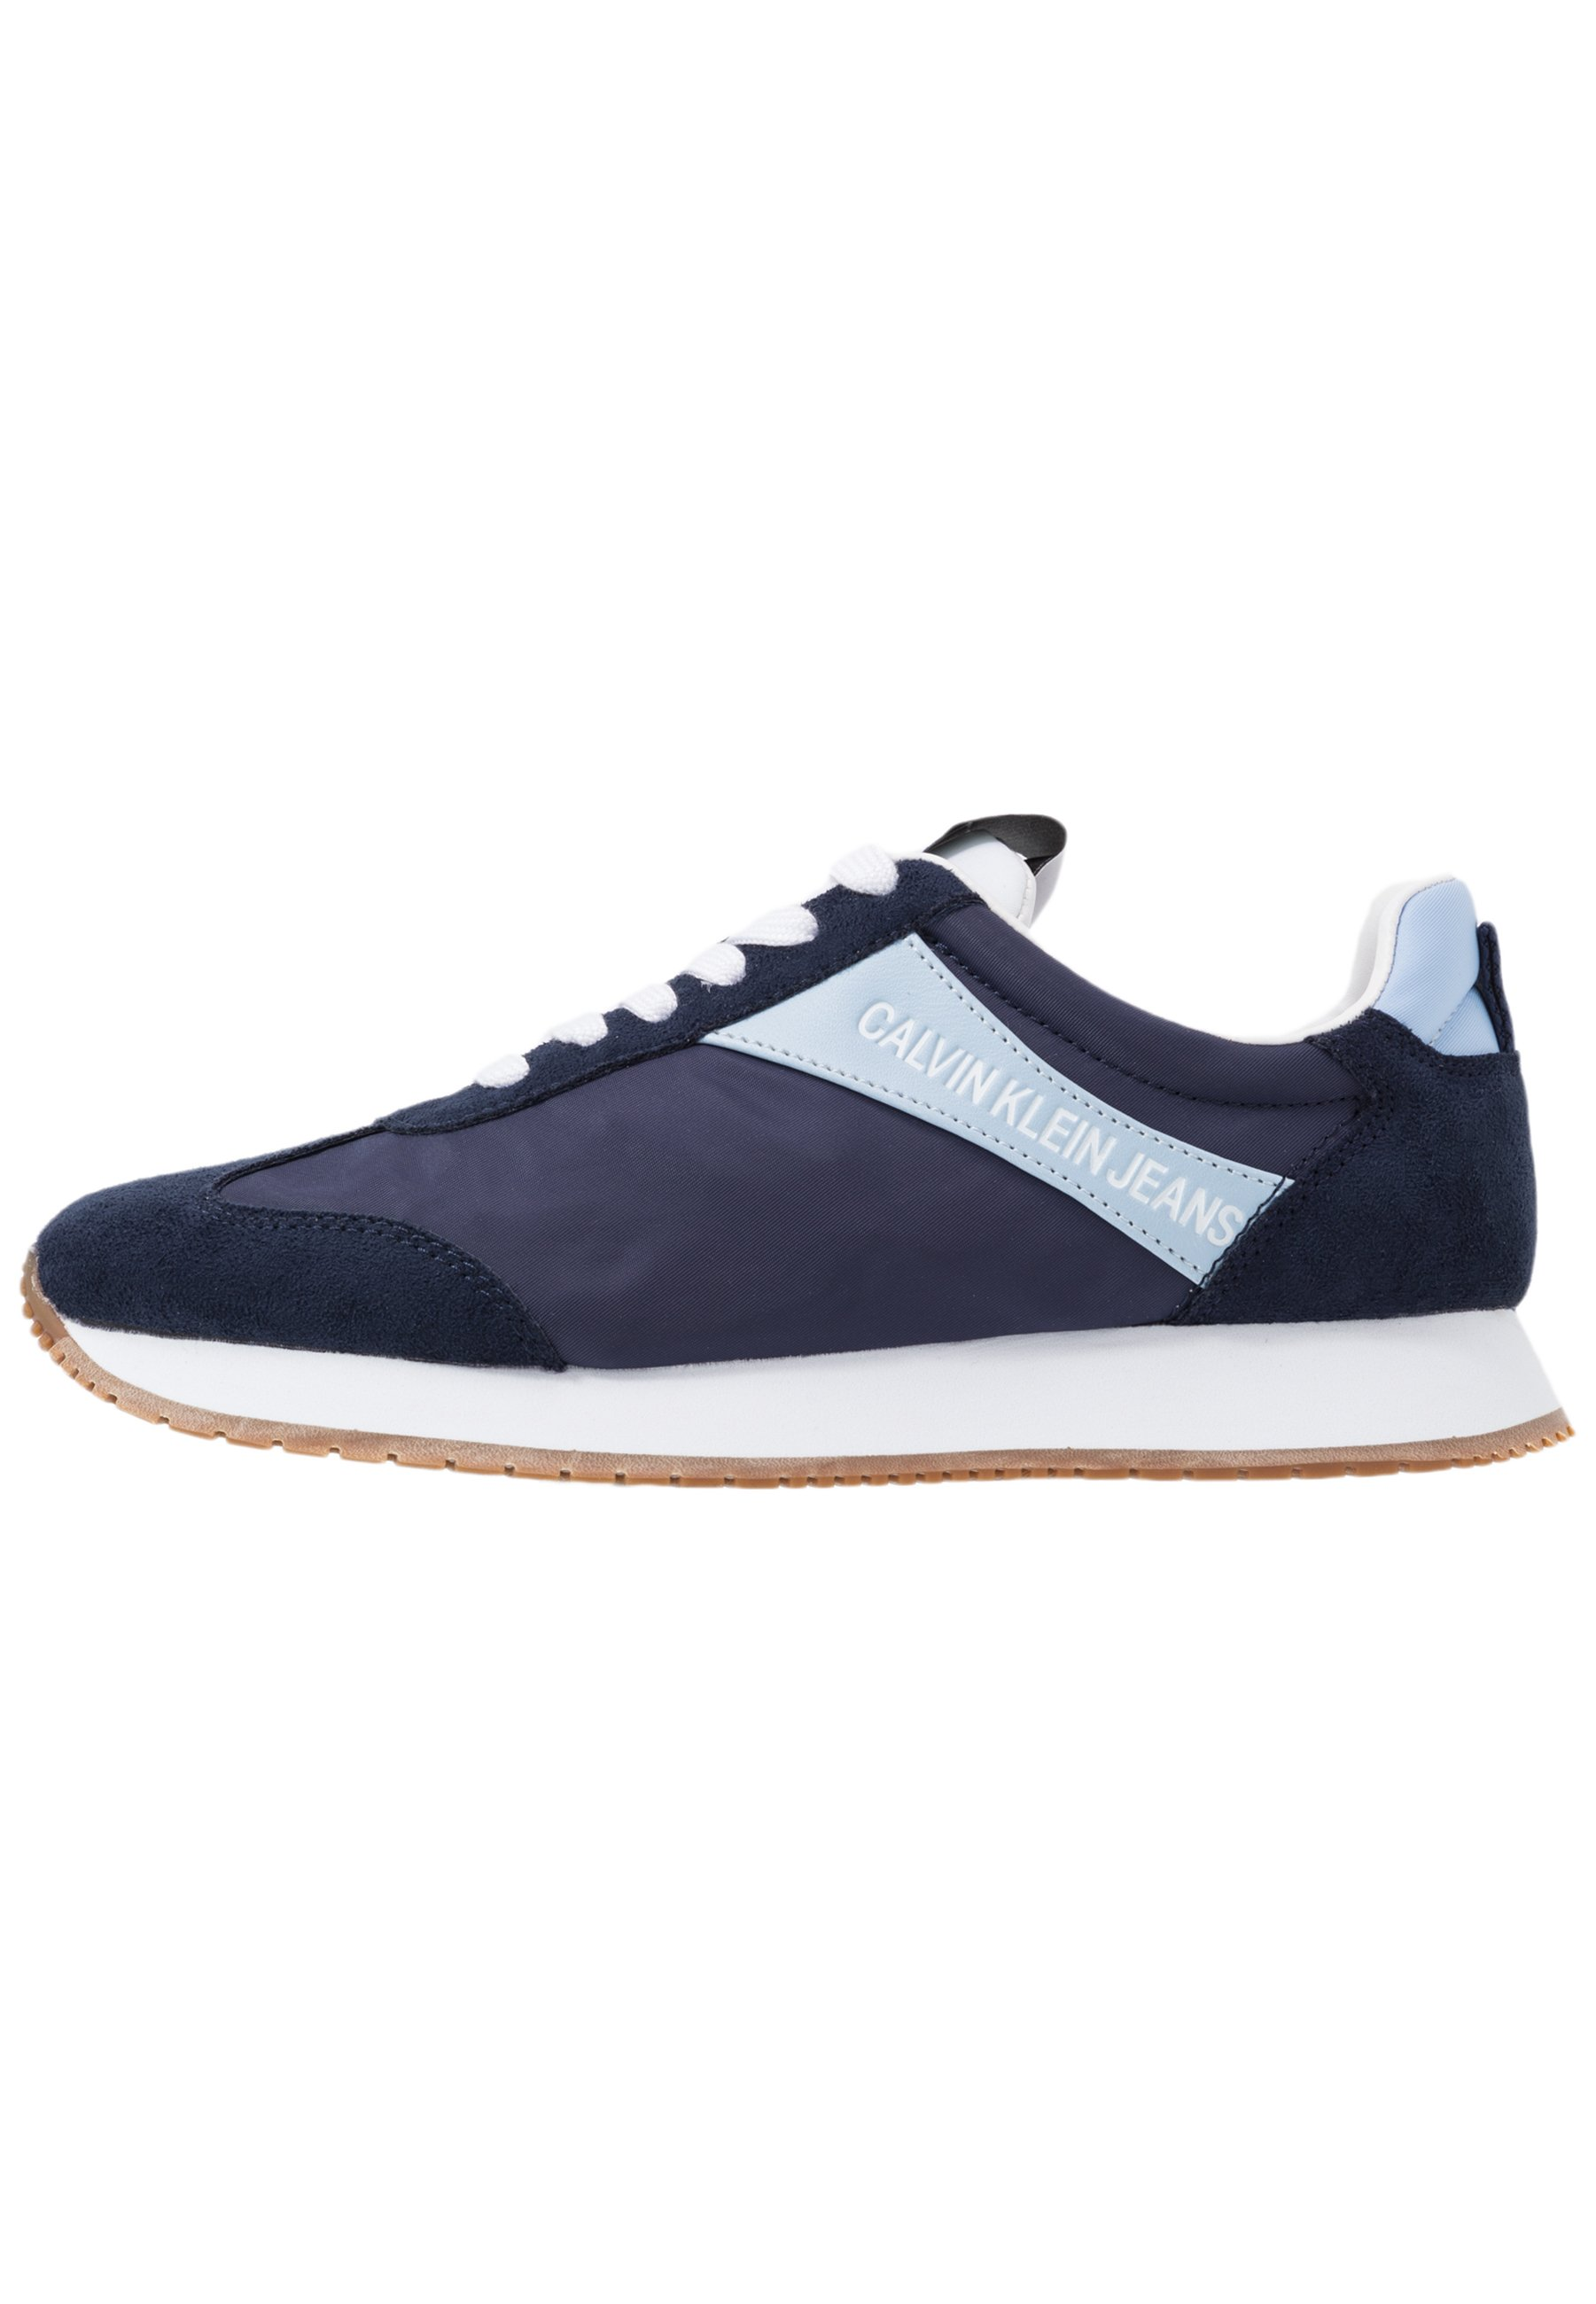 Calvin Klein Jeans Jill - Sneaker Low Black Friday pUzmETvZ